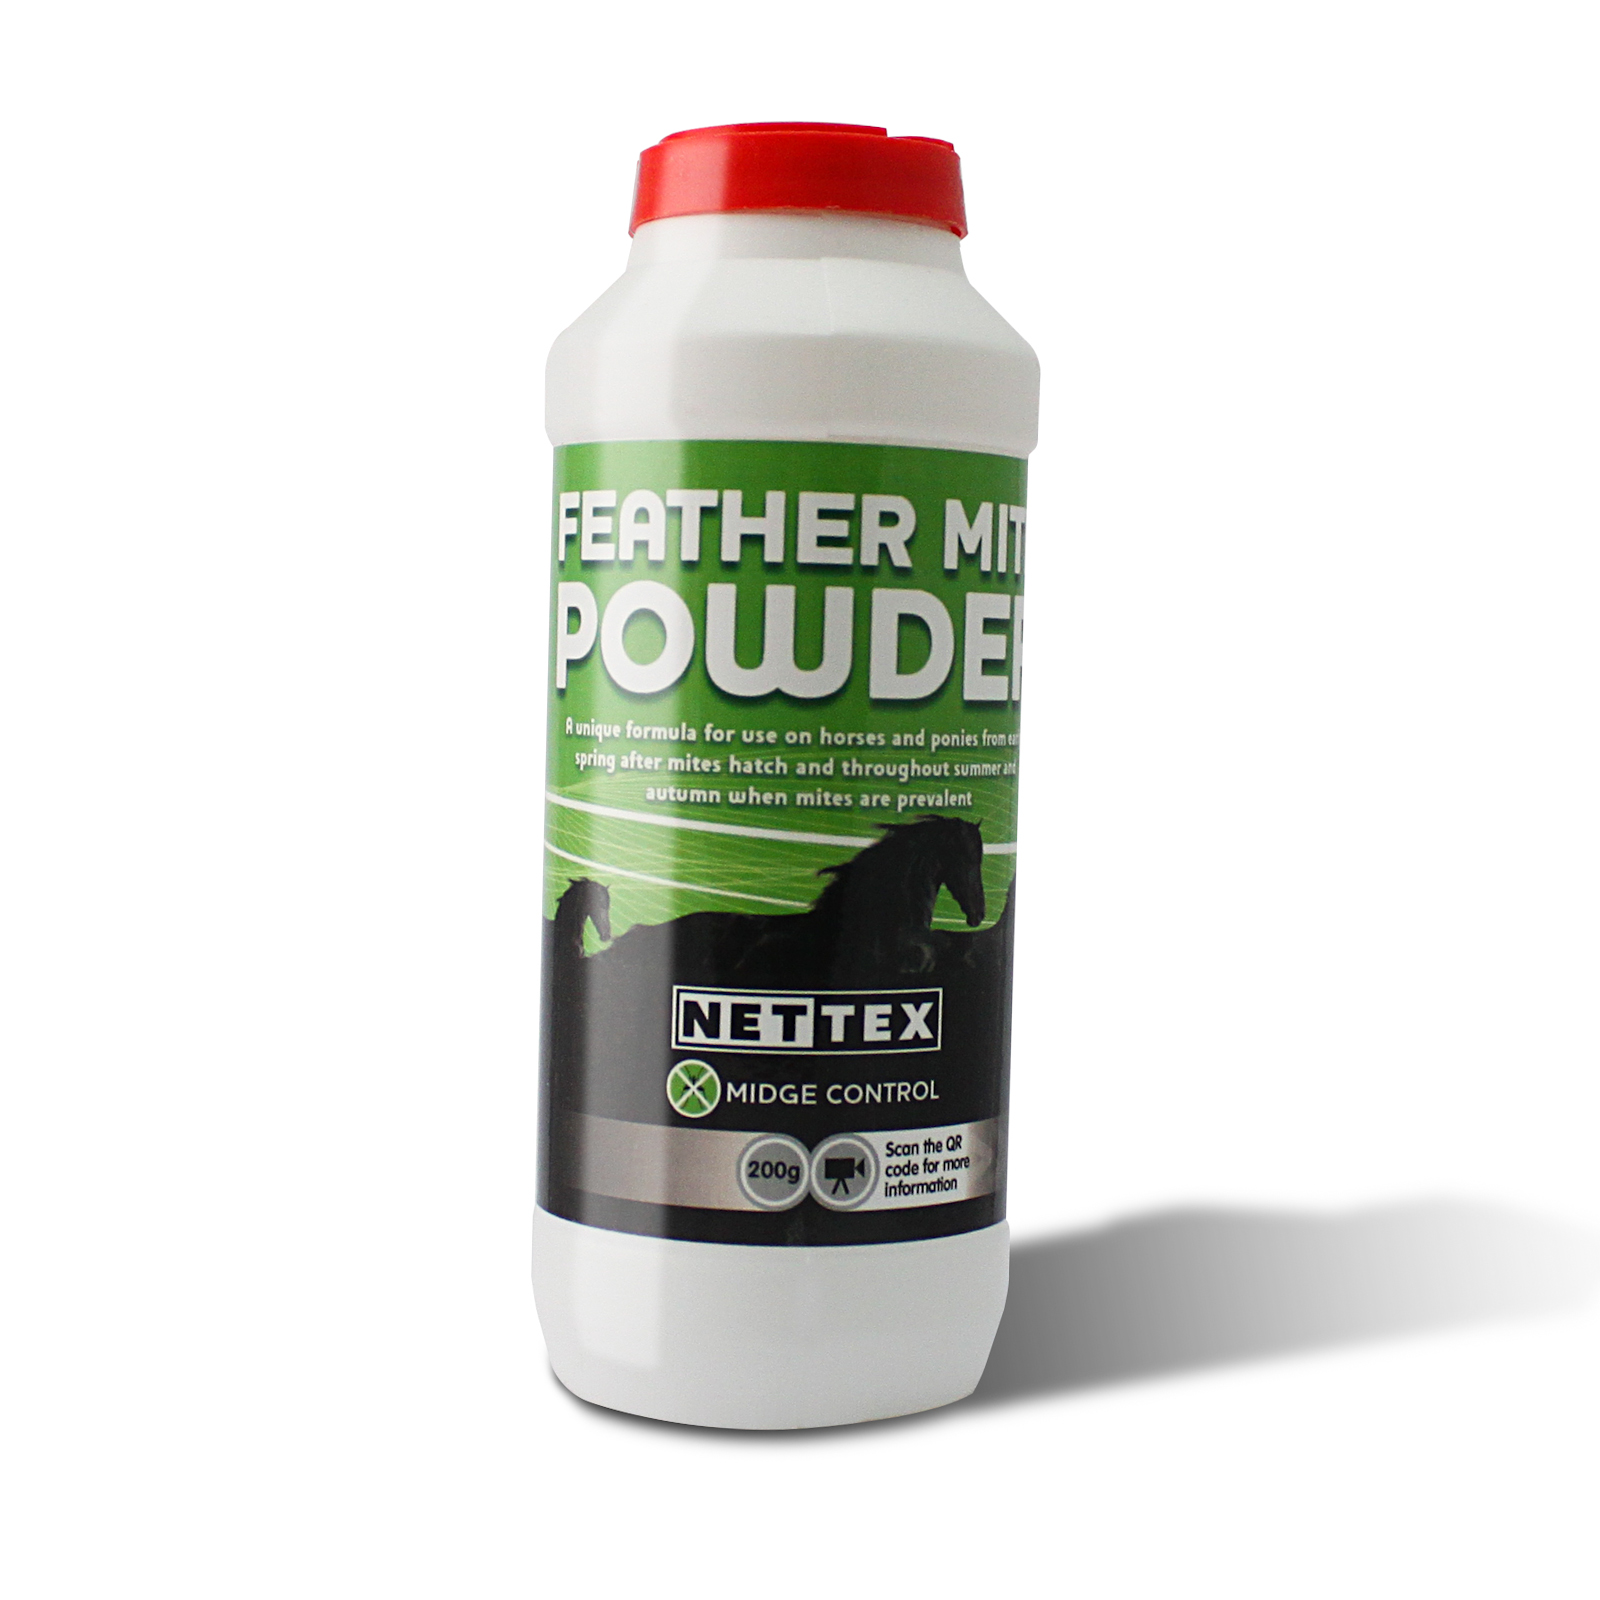 Nettex Feather Mite Powder 200 g